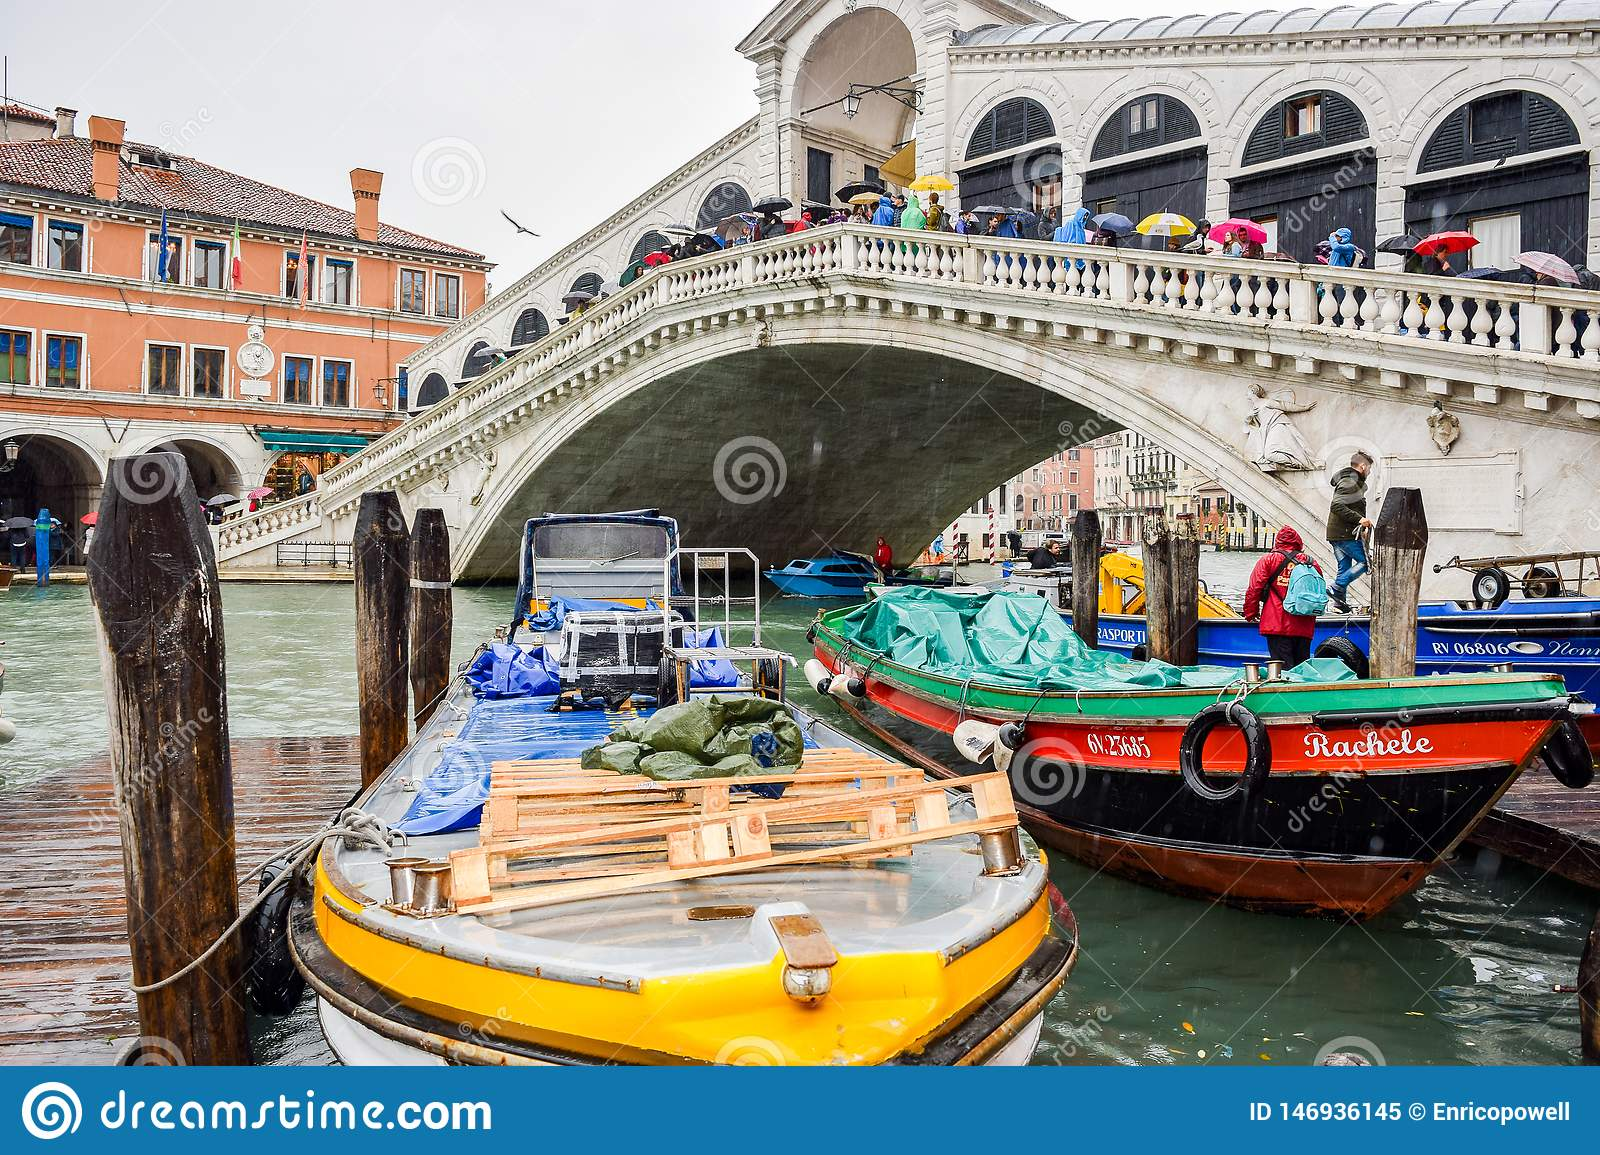 Tourists on a rainy day at Rialto Bridge on the Grand Canal in Venice, Italy.